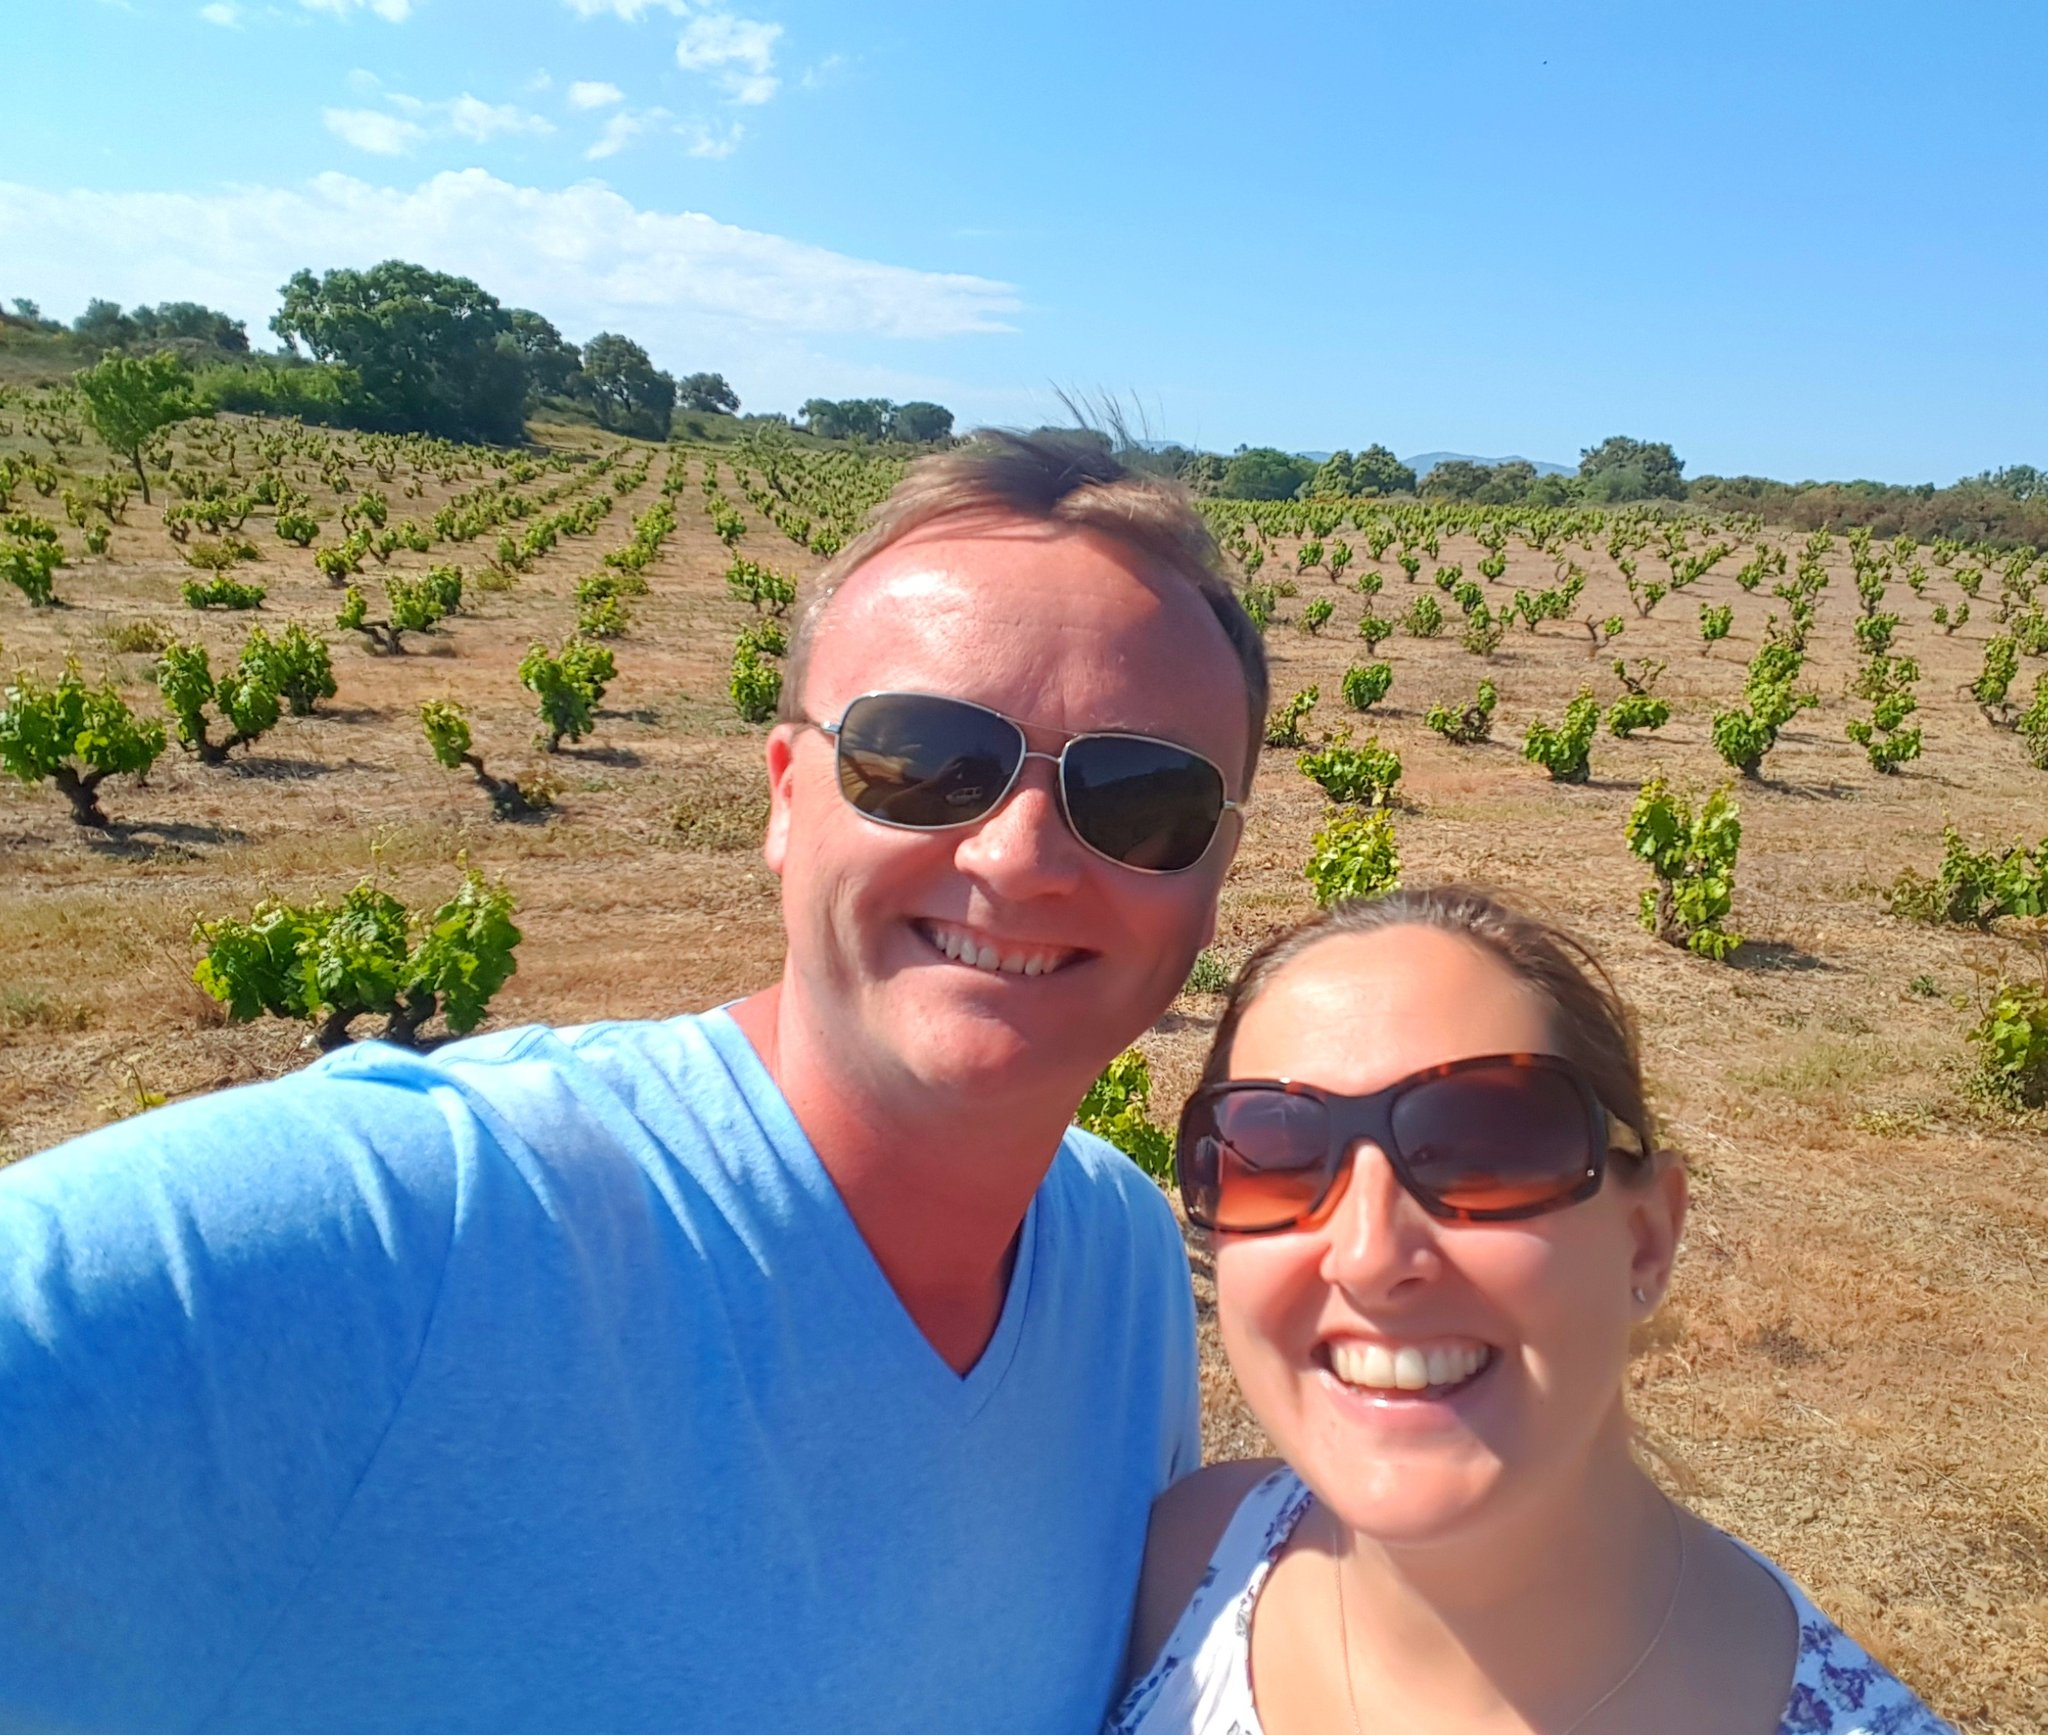 #Selfie with Amber standing among 90+ year old vines at Celler Mas Llunes #InCostaBrava. A #WineLover dream come true. #Wine #Catalunya https://t.co/0AxCgwdlyB